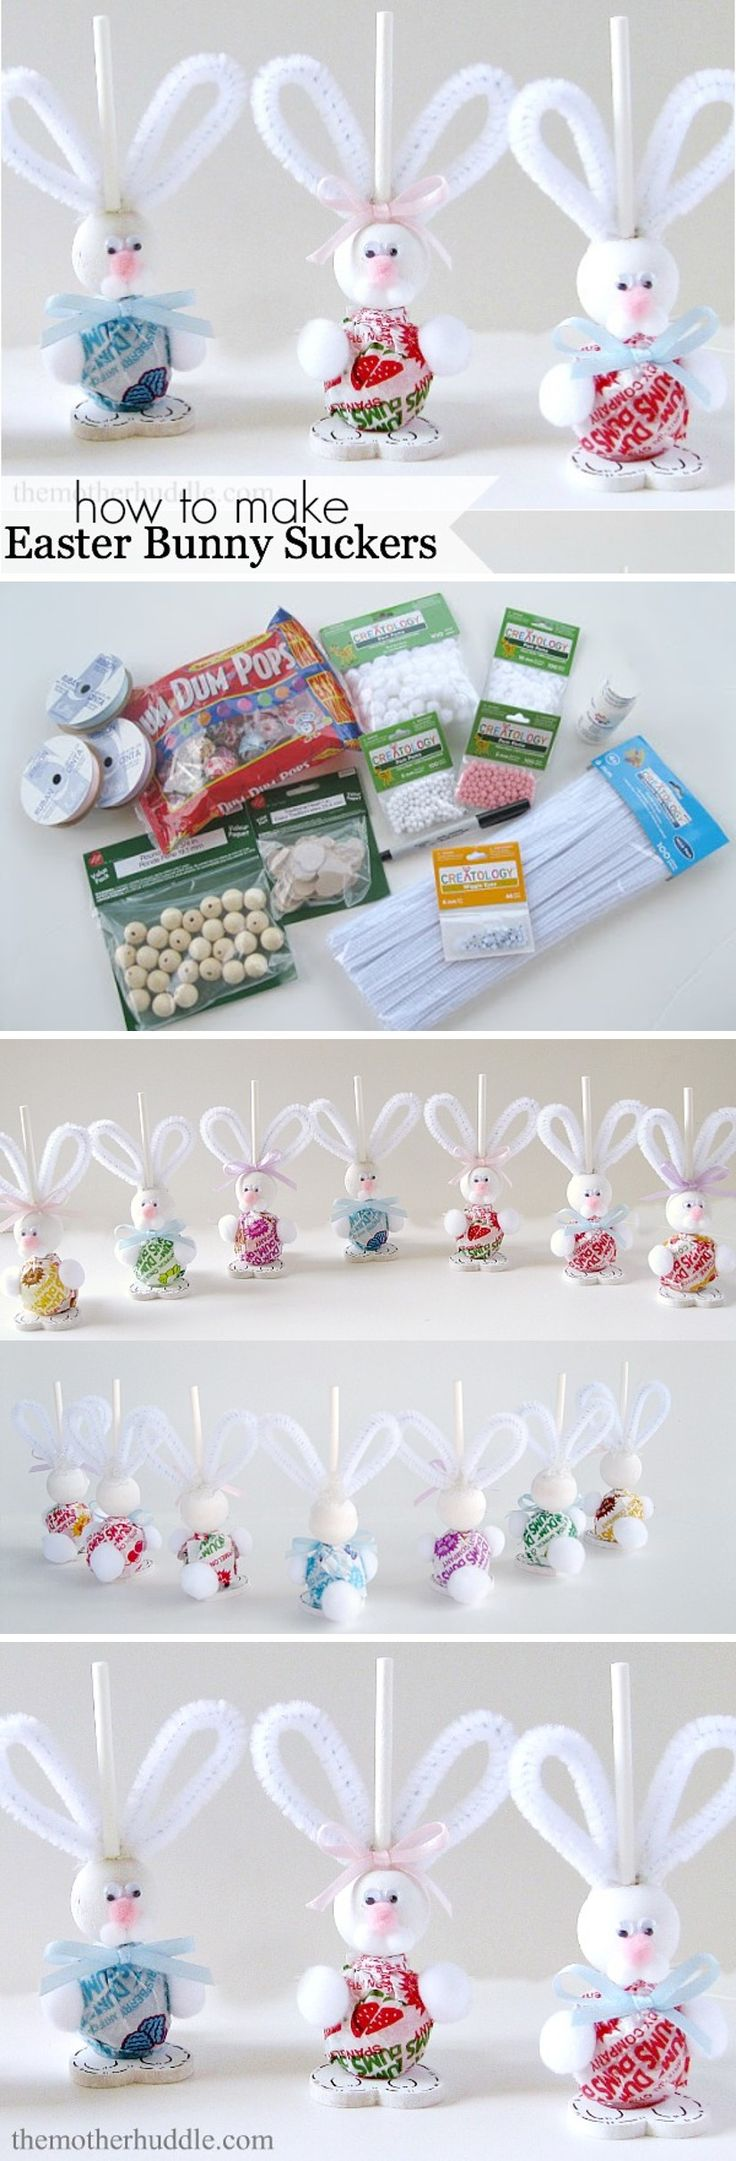 DIY Easter Bunny Suckers [Tutorial] : Dums Suckers for the body + wooden ball for head + wooden heart for feet + googly eyes + pom pom for nose, paws, and tail + pipe cleaners for ears + blue or pink ribbon... what a fun kid project for Easter!